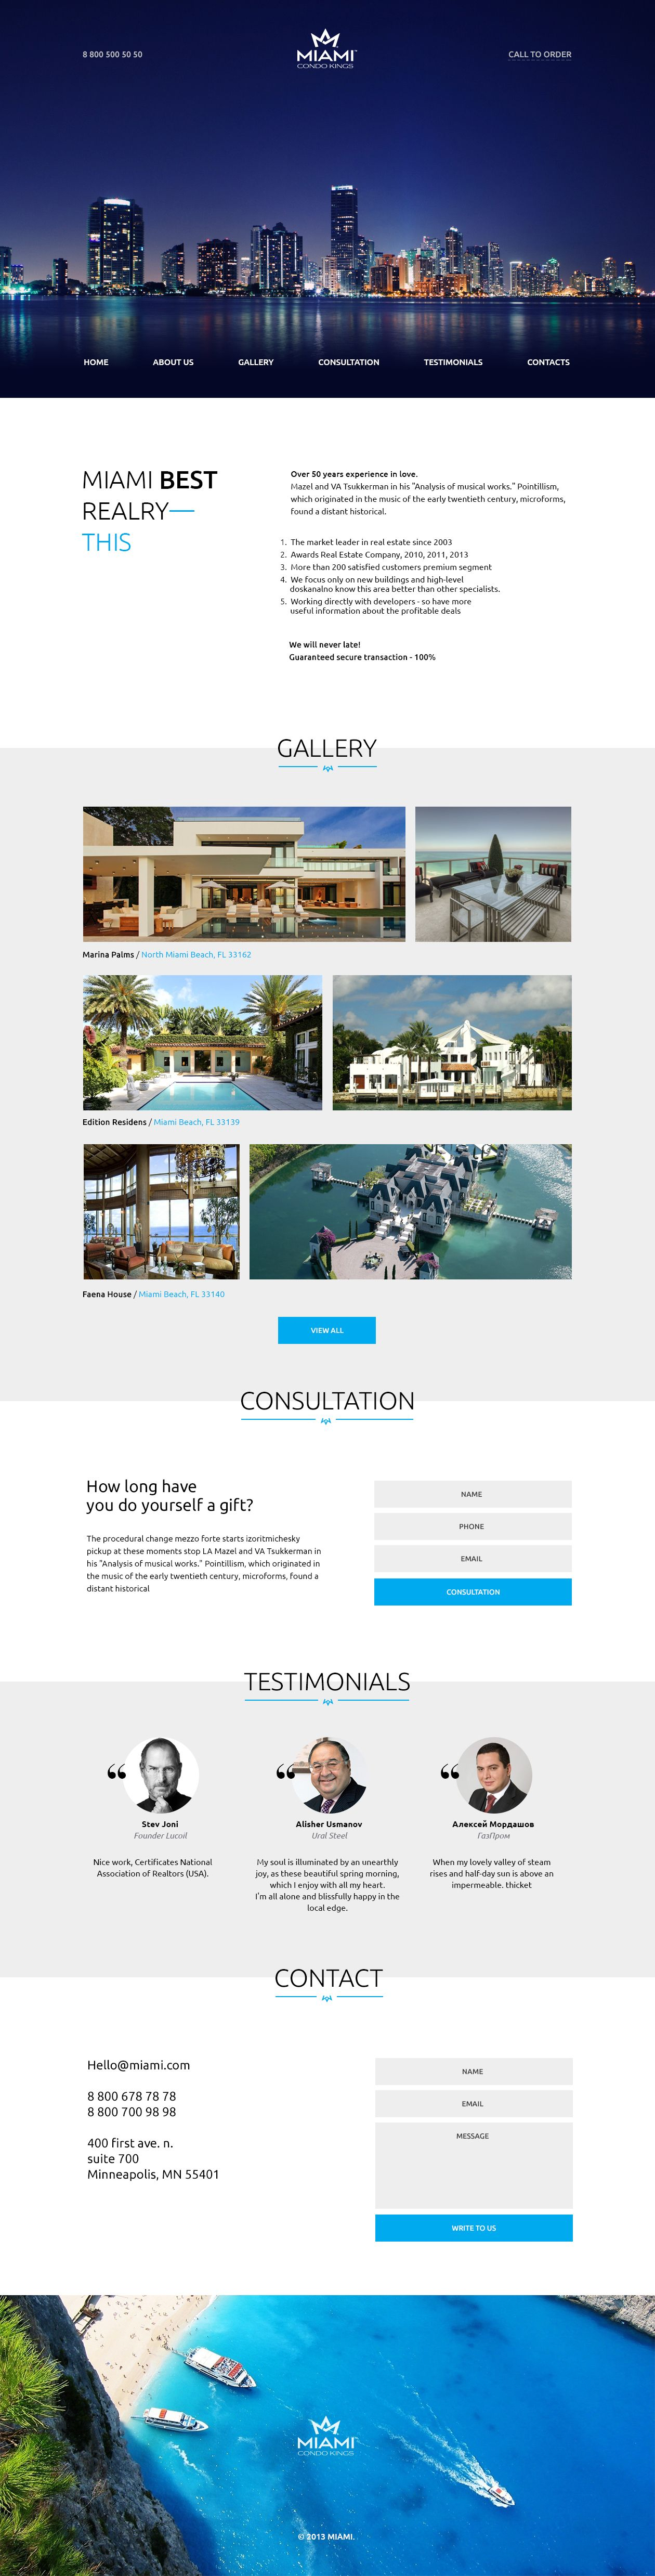 Miami 365psd Free Psd Download Of This Real Estate One Page Website Real Estates Design Web Design Web Layout Design